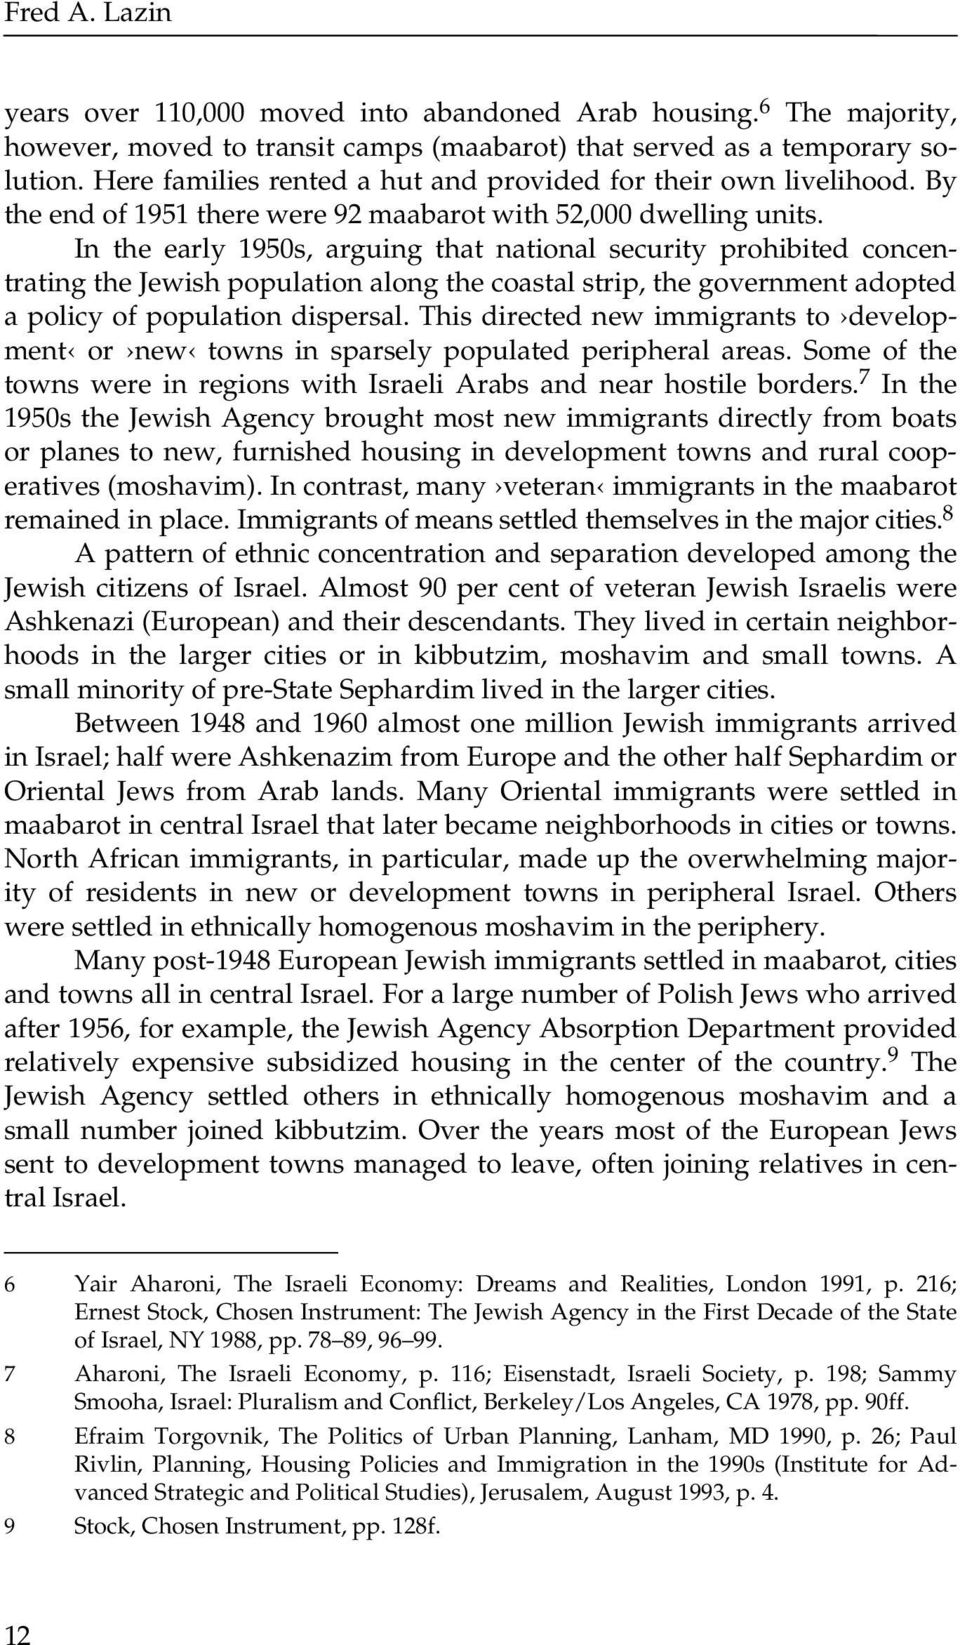 In the early 1950s, arguing that national security prohibited concentrating the Jewish population along the coastal strip, the government adopted a policy of population dispersal.